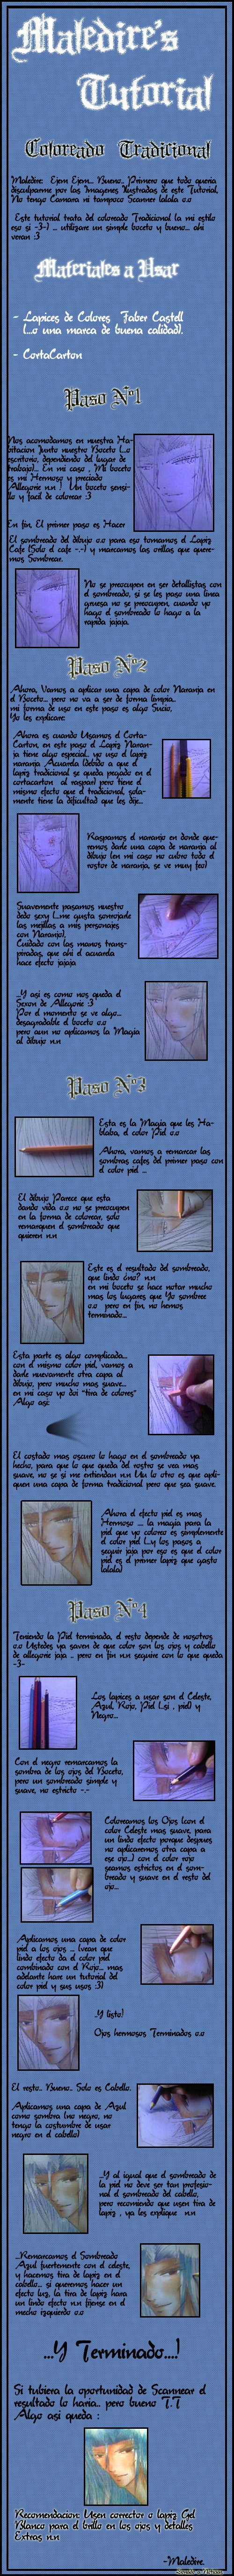 Tutorial Coloreado Tradicional by noticias